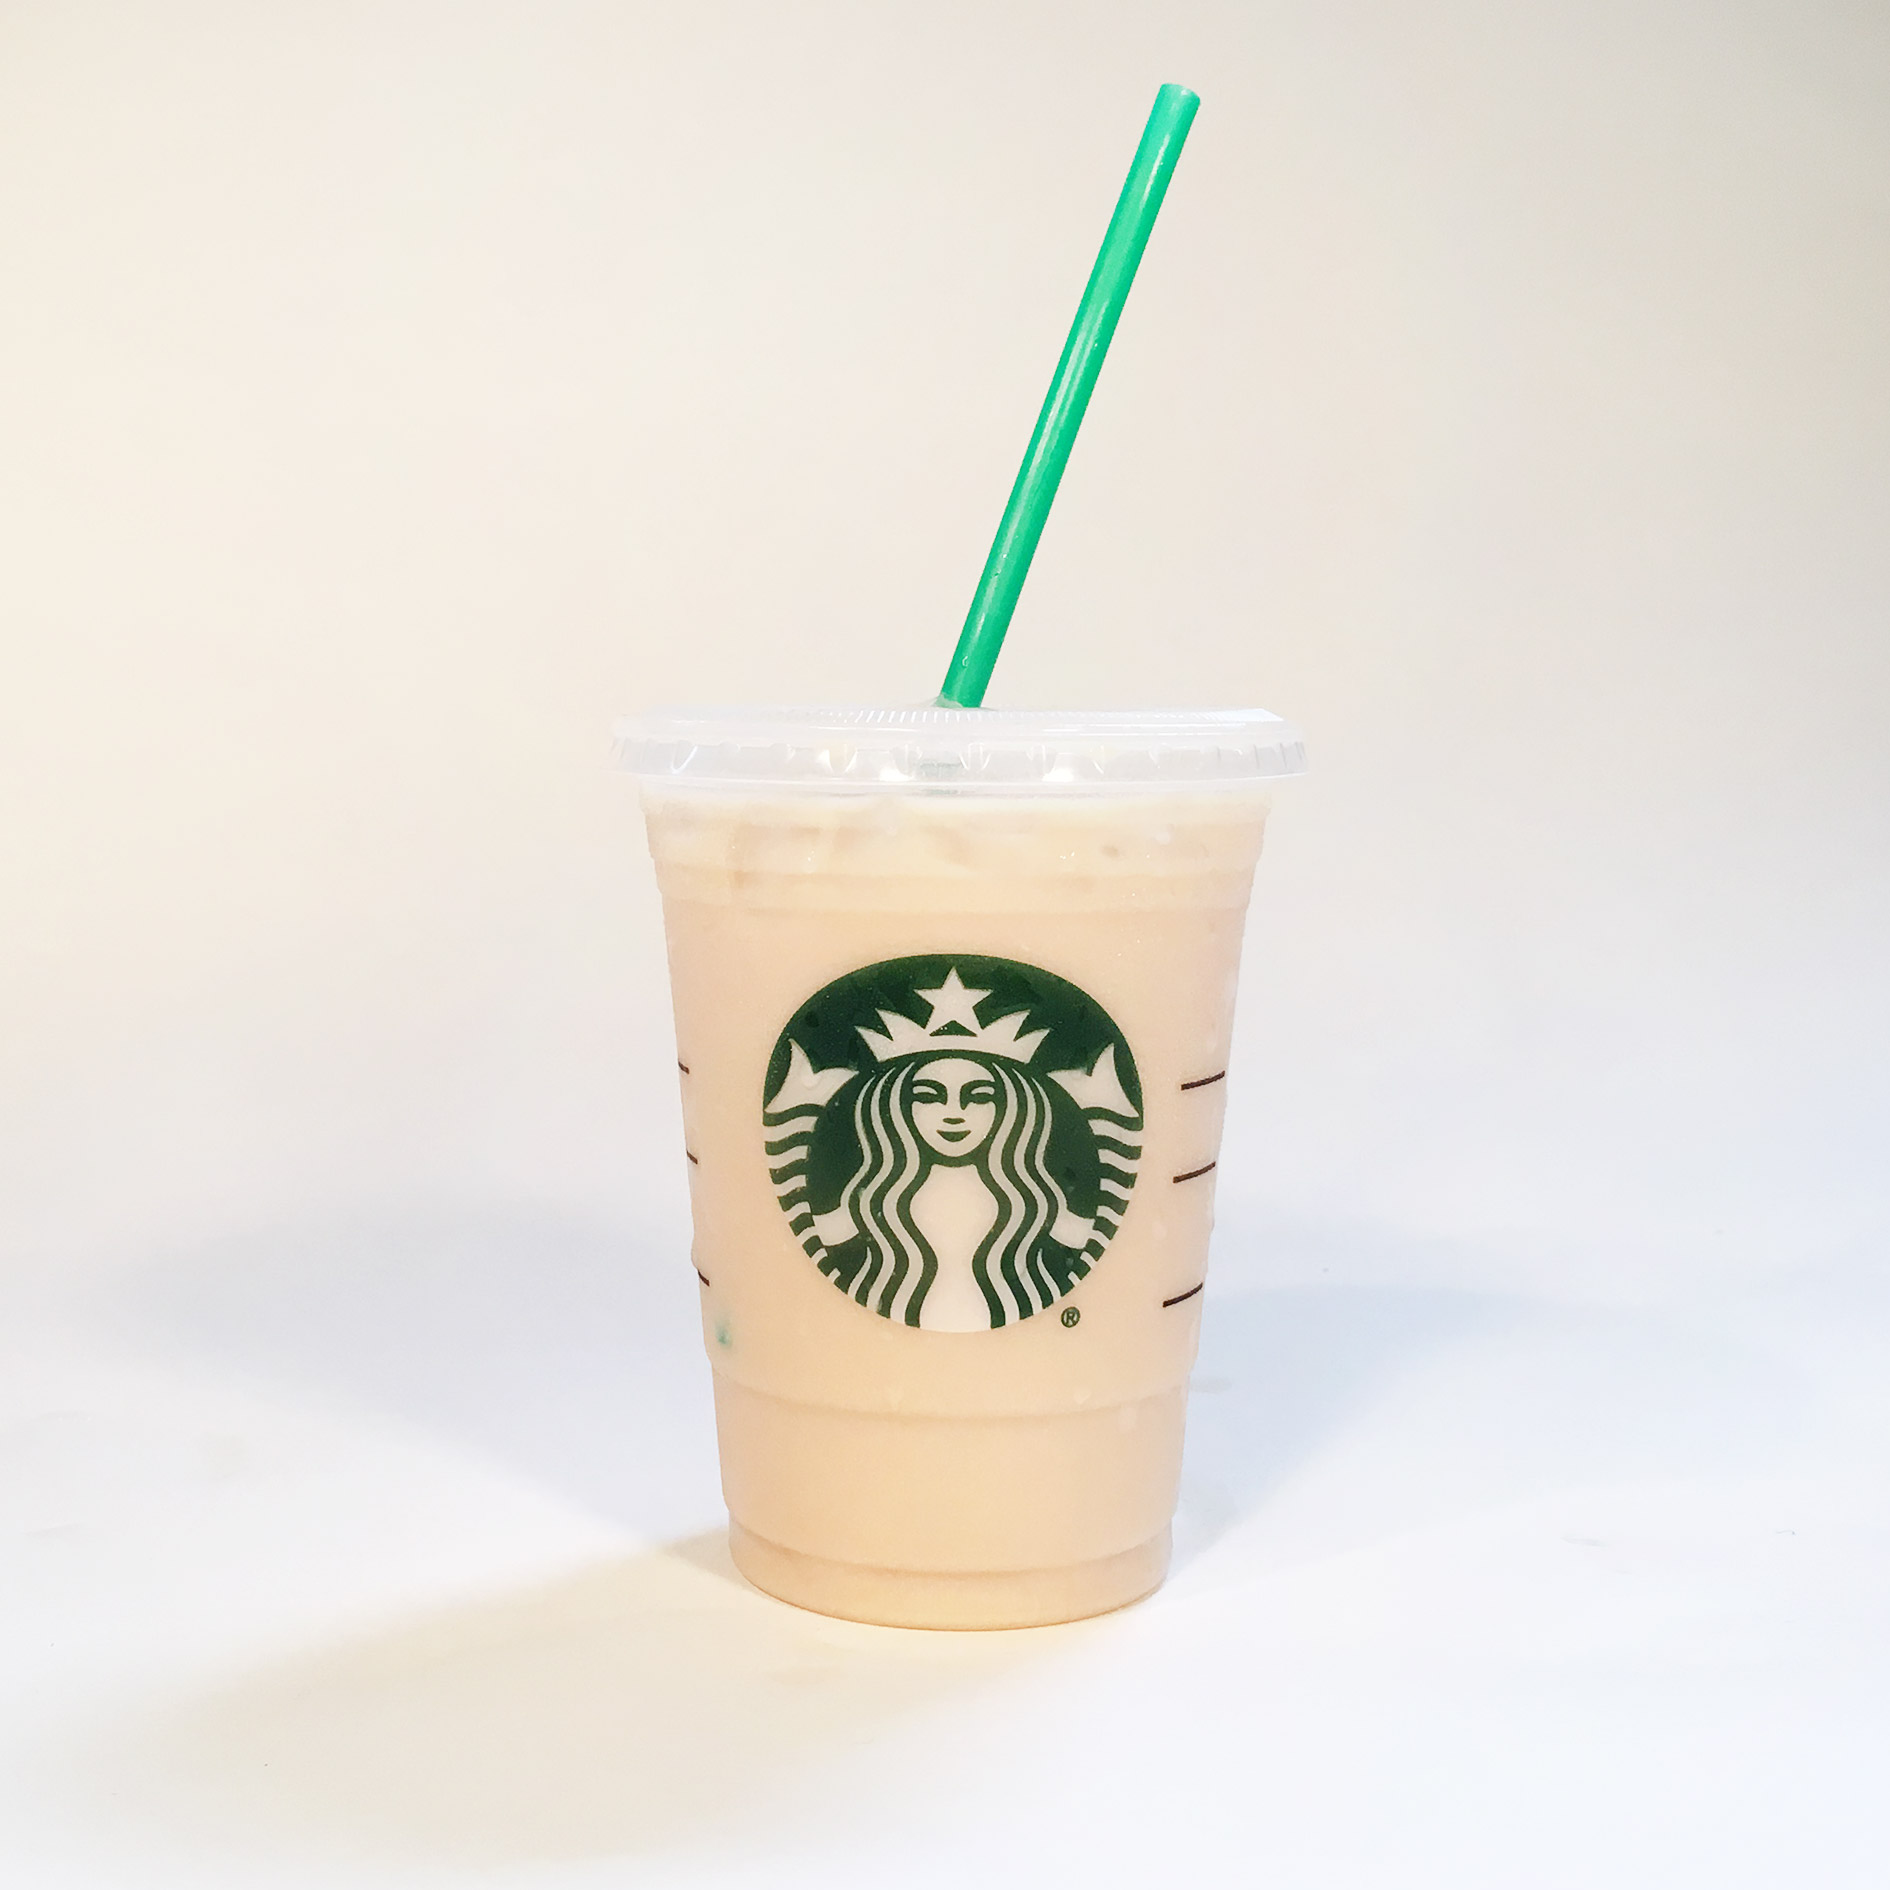 EC:  assets%2Fmessage-editor%2F1465418935205-black-ice-tea-off-menu-starbucks-drink